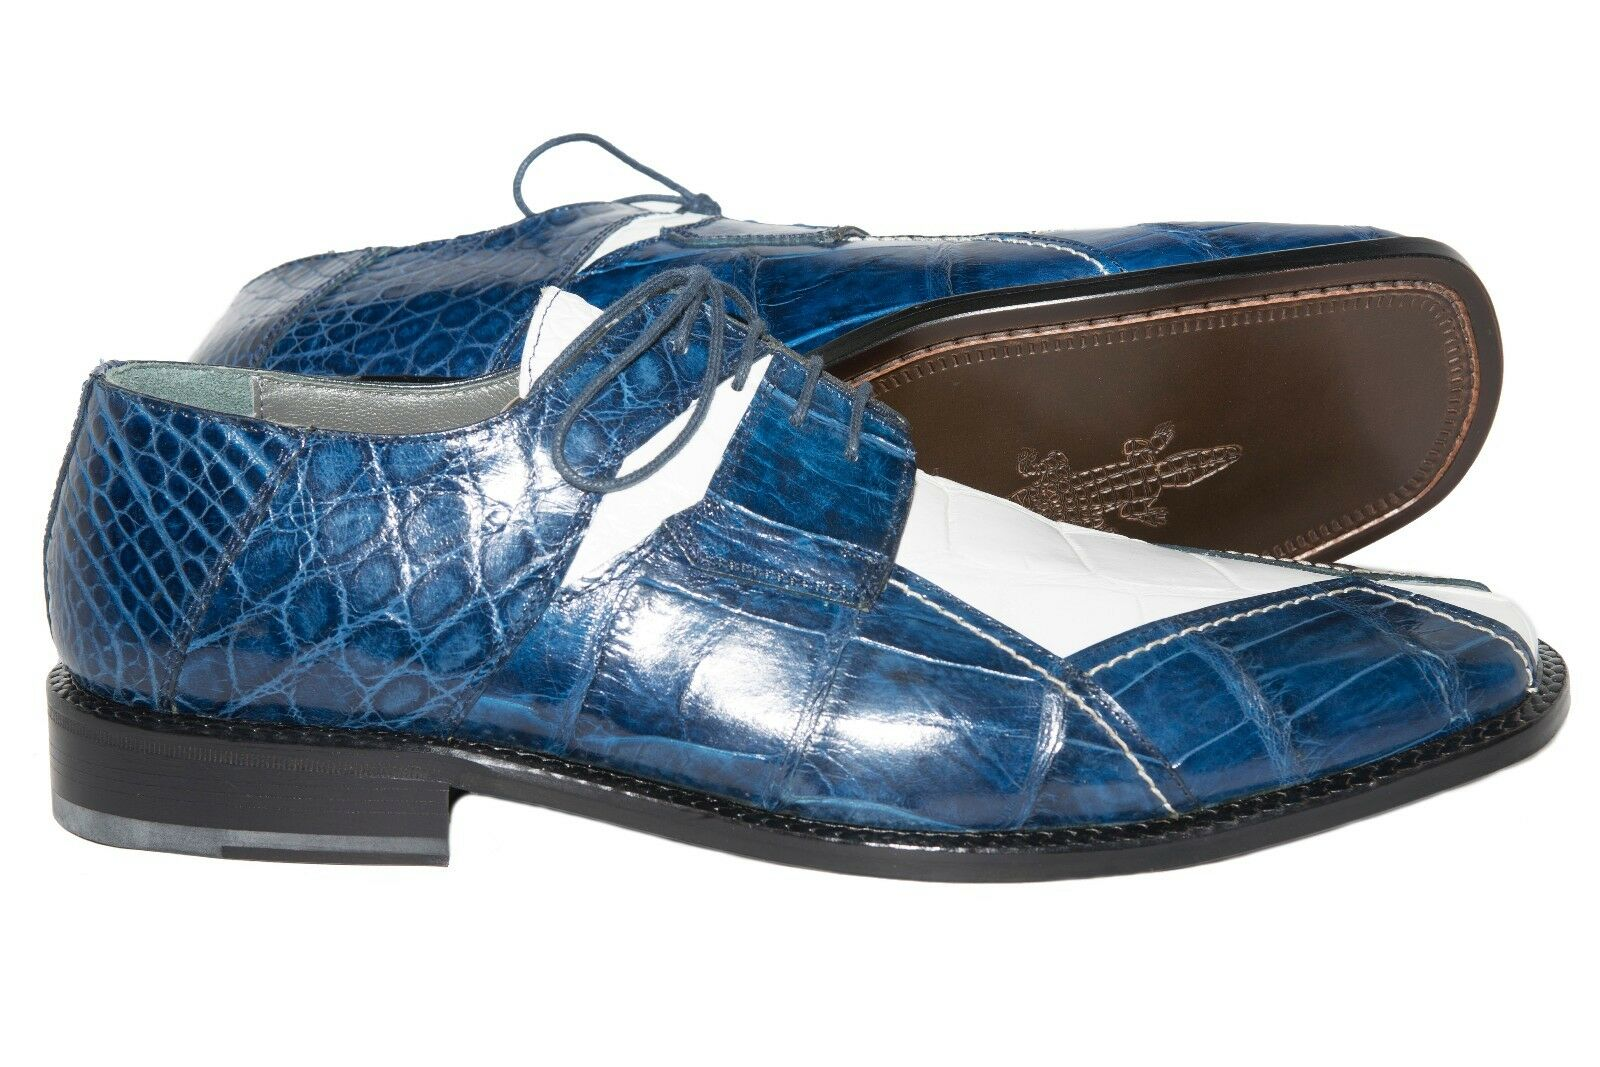 Slickexotica L-87 made in Espagne deux tons Genuine Alligator Lacets Chaussures